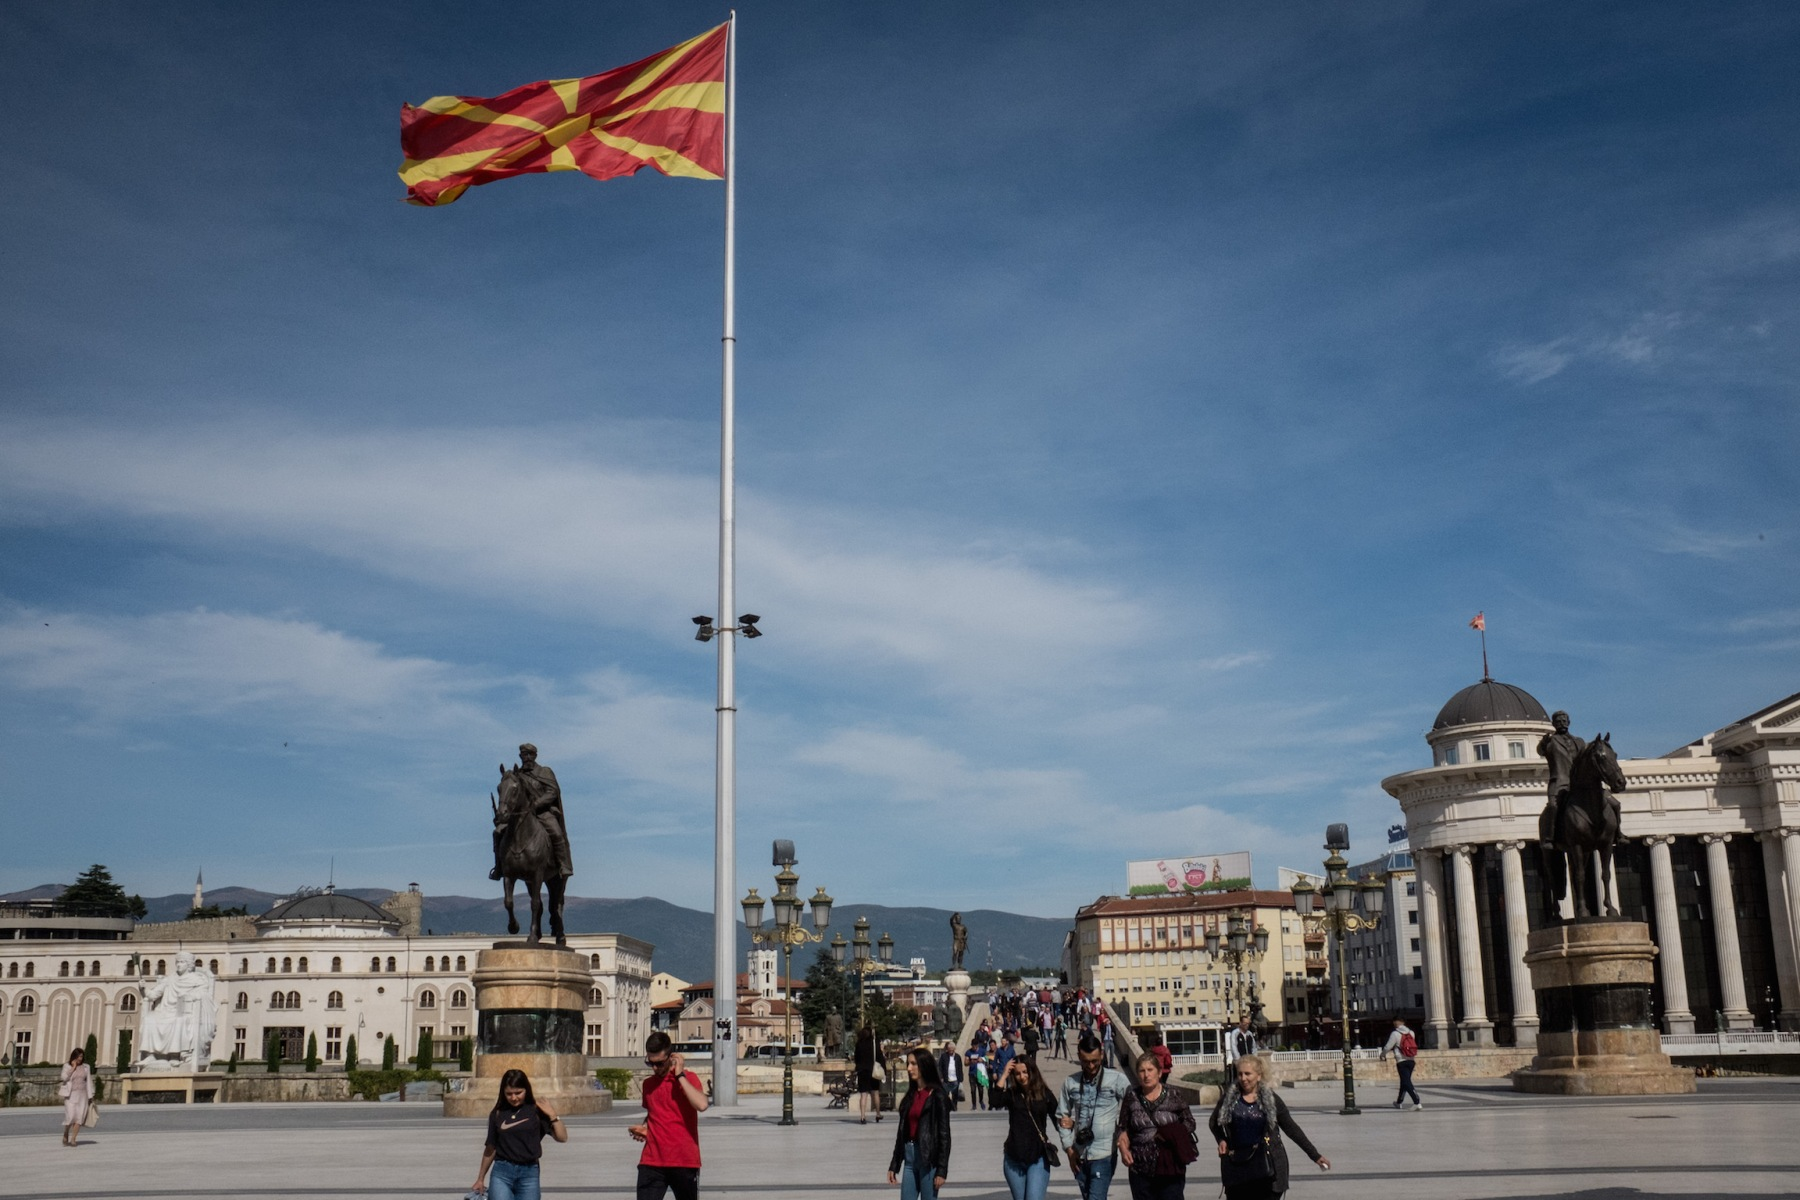 """People walk under a larg Macedonian flag on September 28, 2018 in Skopje, Macedonia. Macedonians will go to the polls Sunday to vote in a referendum to change the countries name to the """"Republic of North Macedonia"""" and end a long running dispute with Greece. Macedonia would not be the first country in recent memory to change its name. (Photo by Chris McGrath/Getty Images)"""